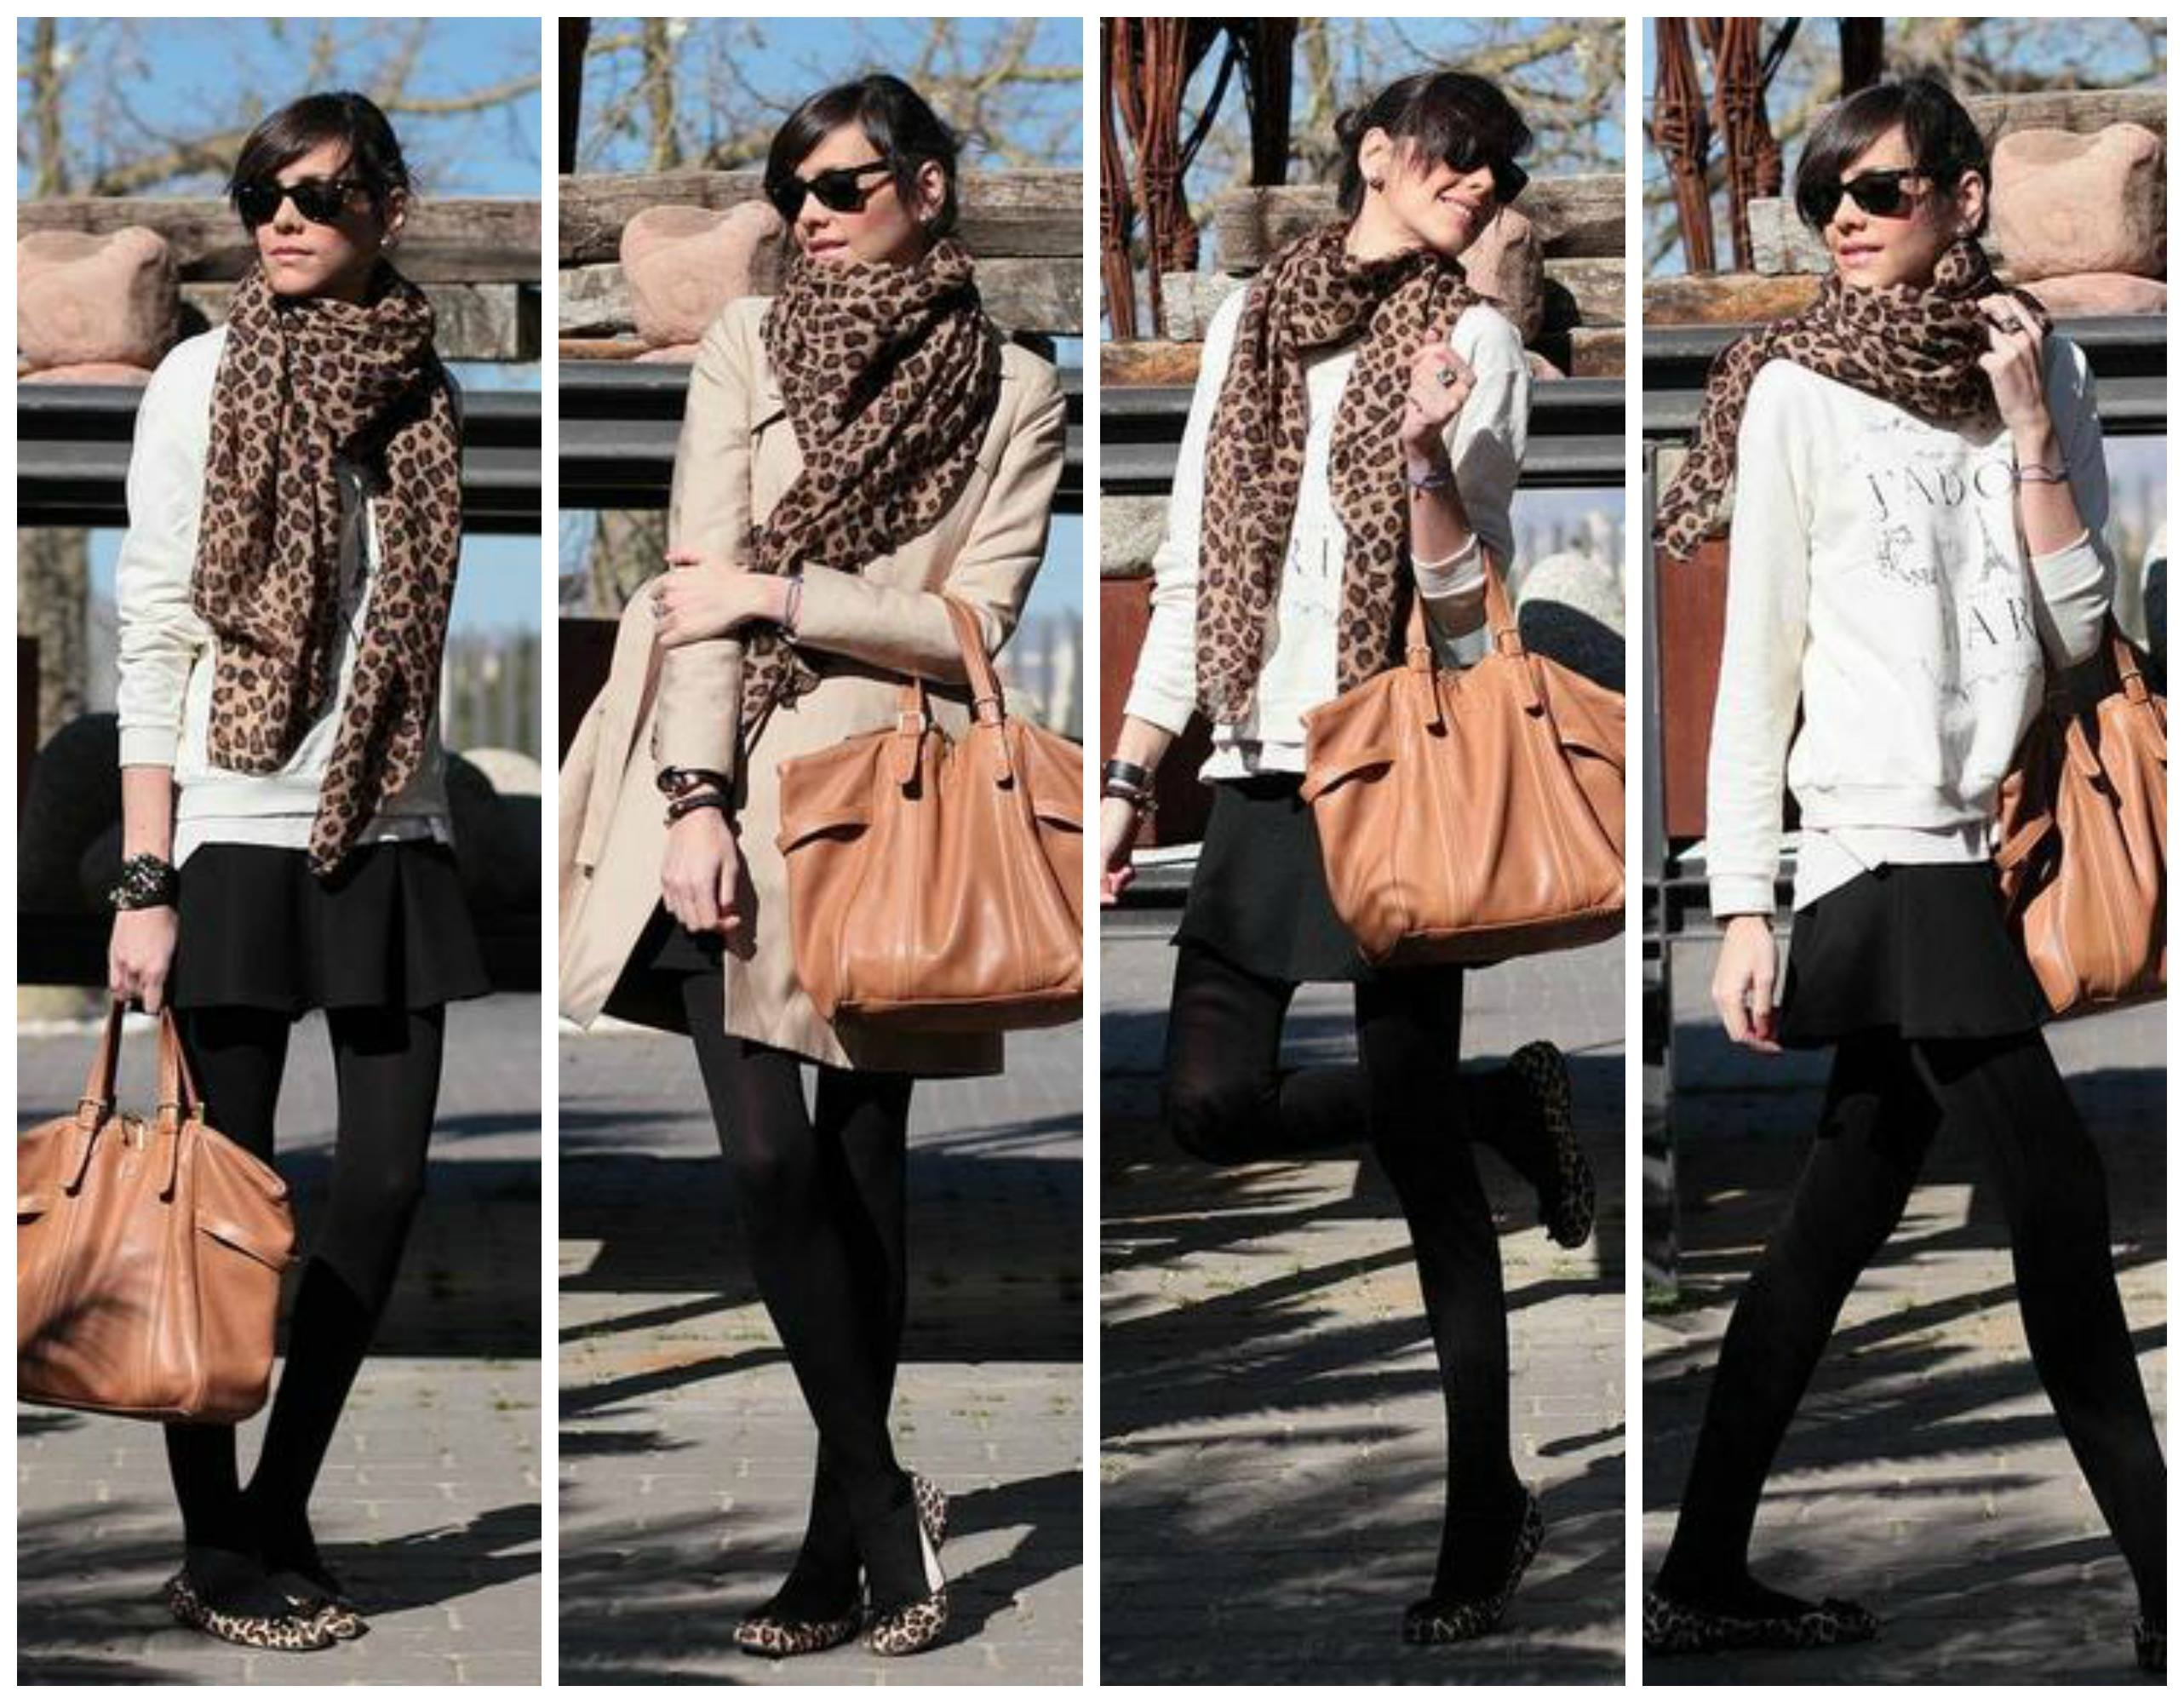 animal-scarf-with-sweatshirt Outfits with Scarves-18 Chic Ways to Wear Scarves for Girls